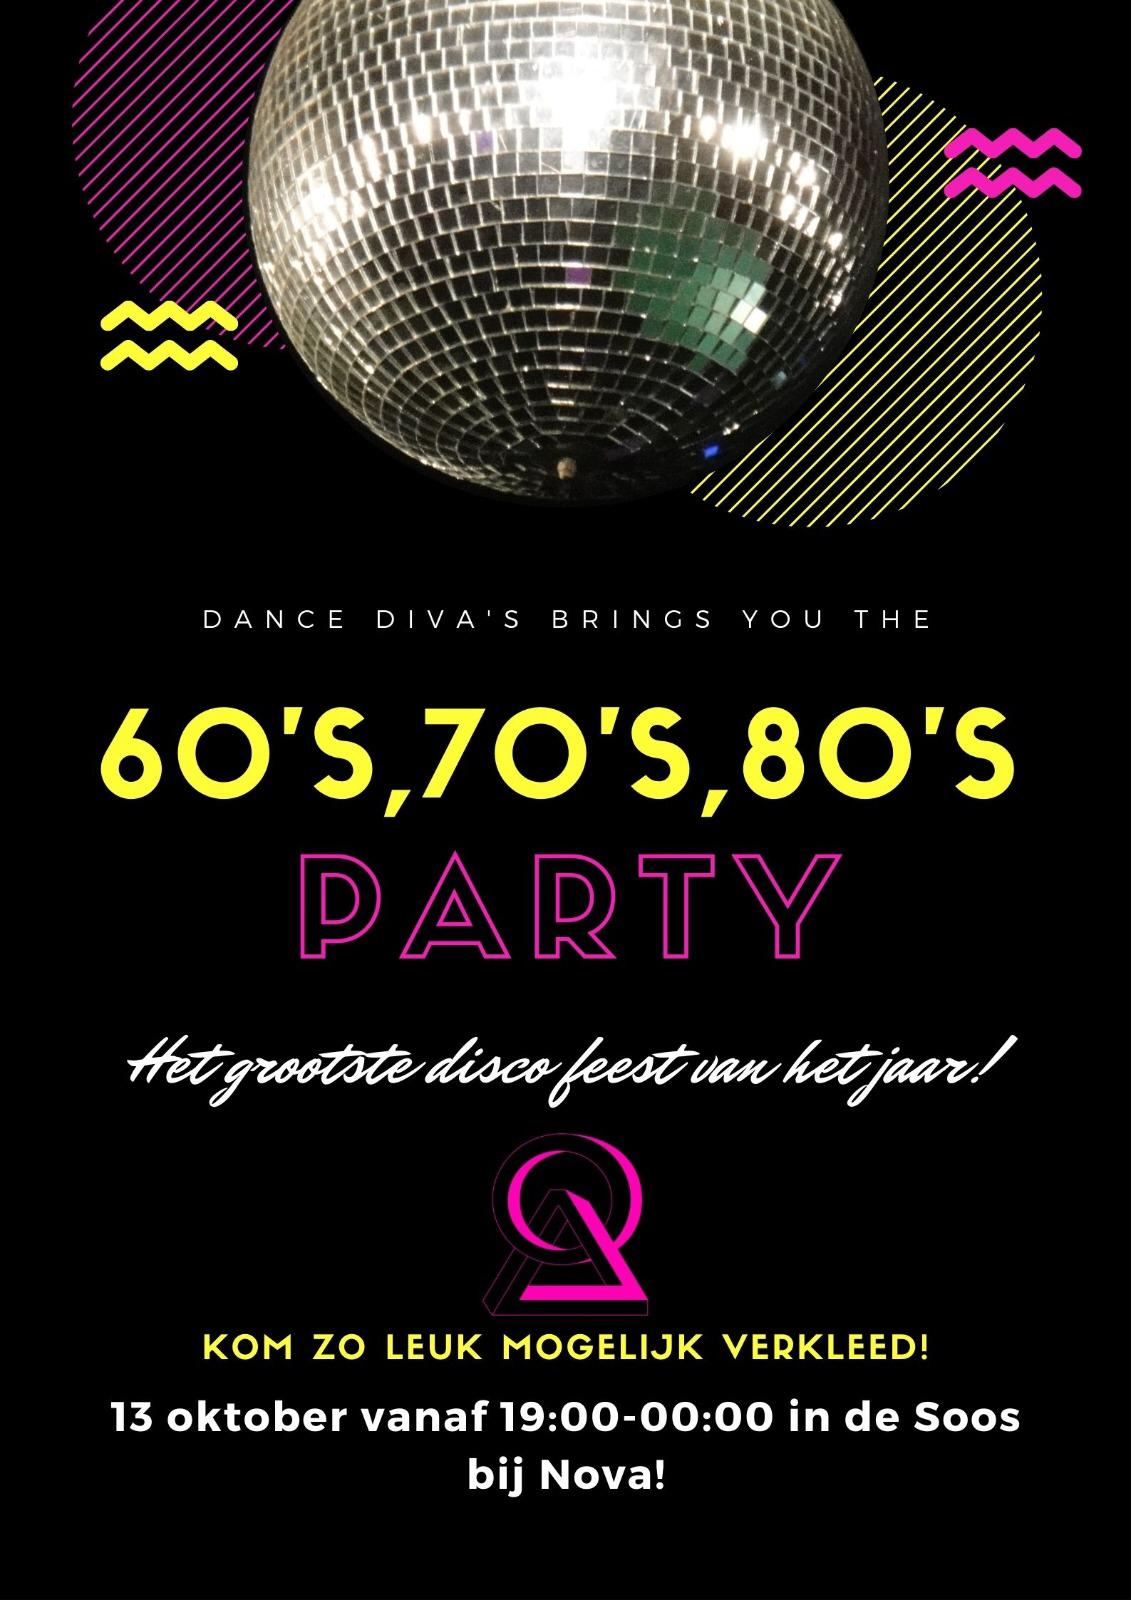 60's, 70's, 80's Party